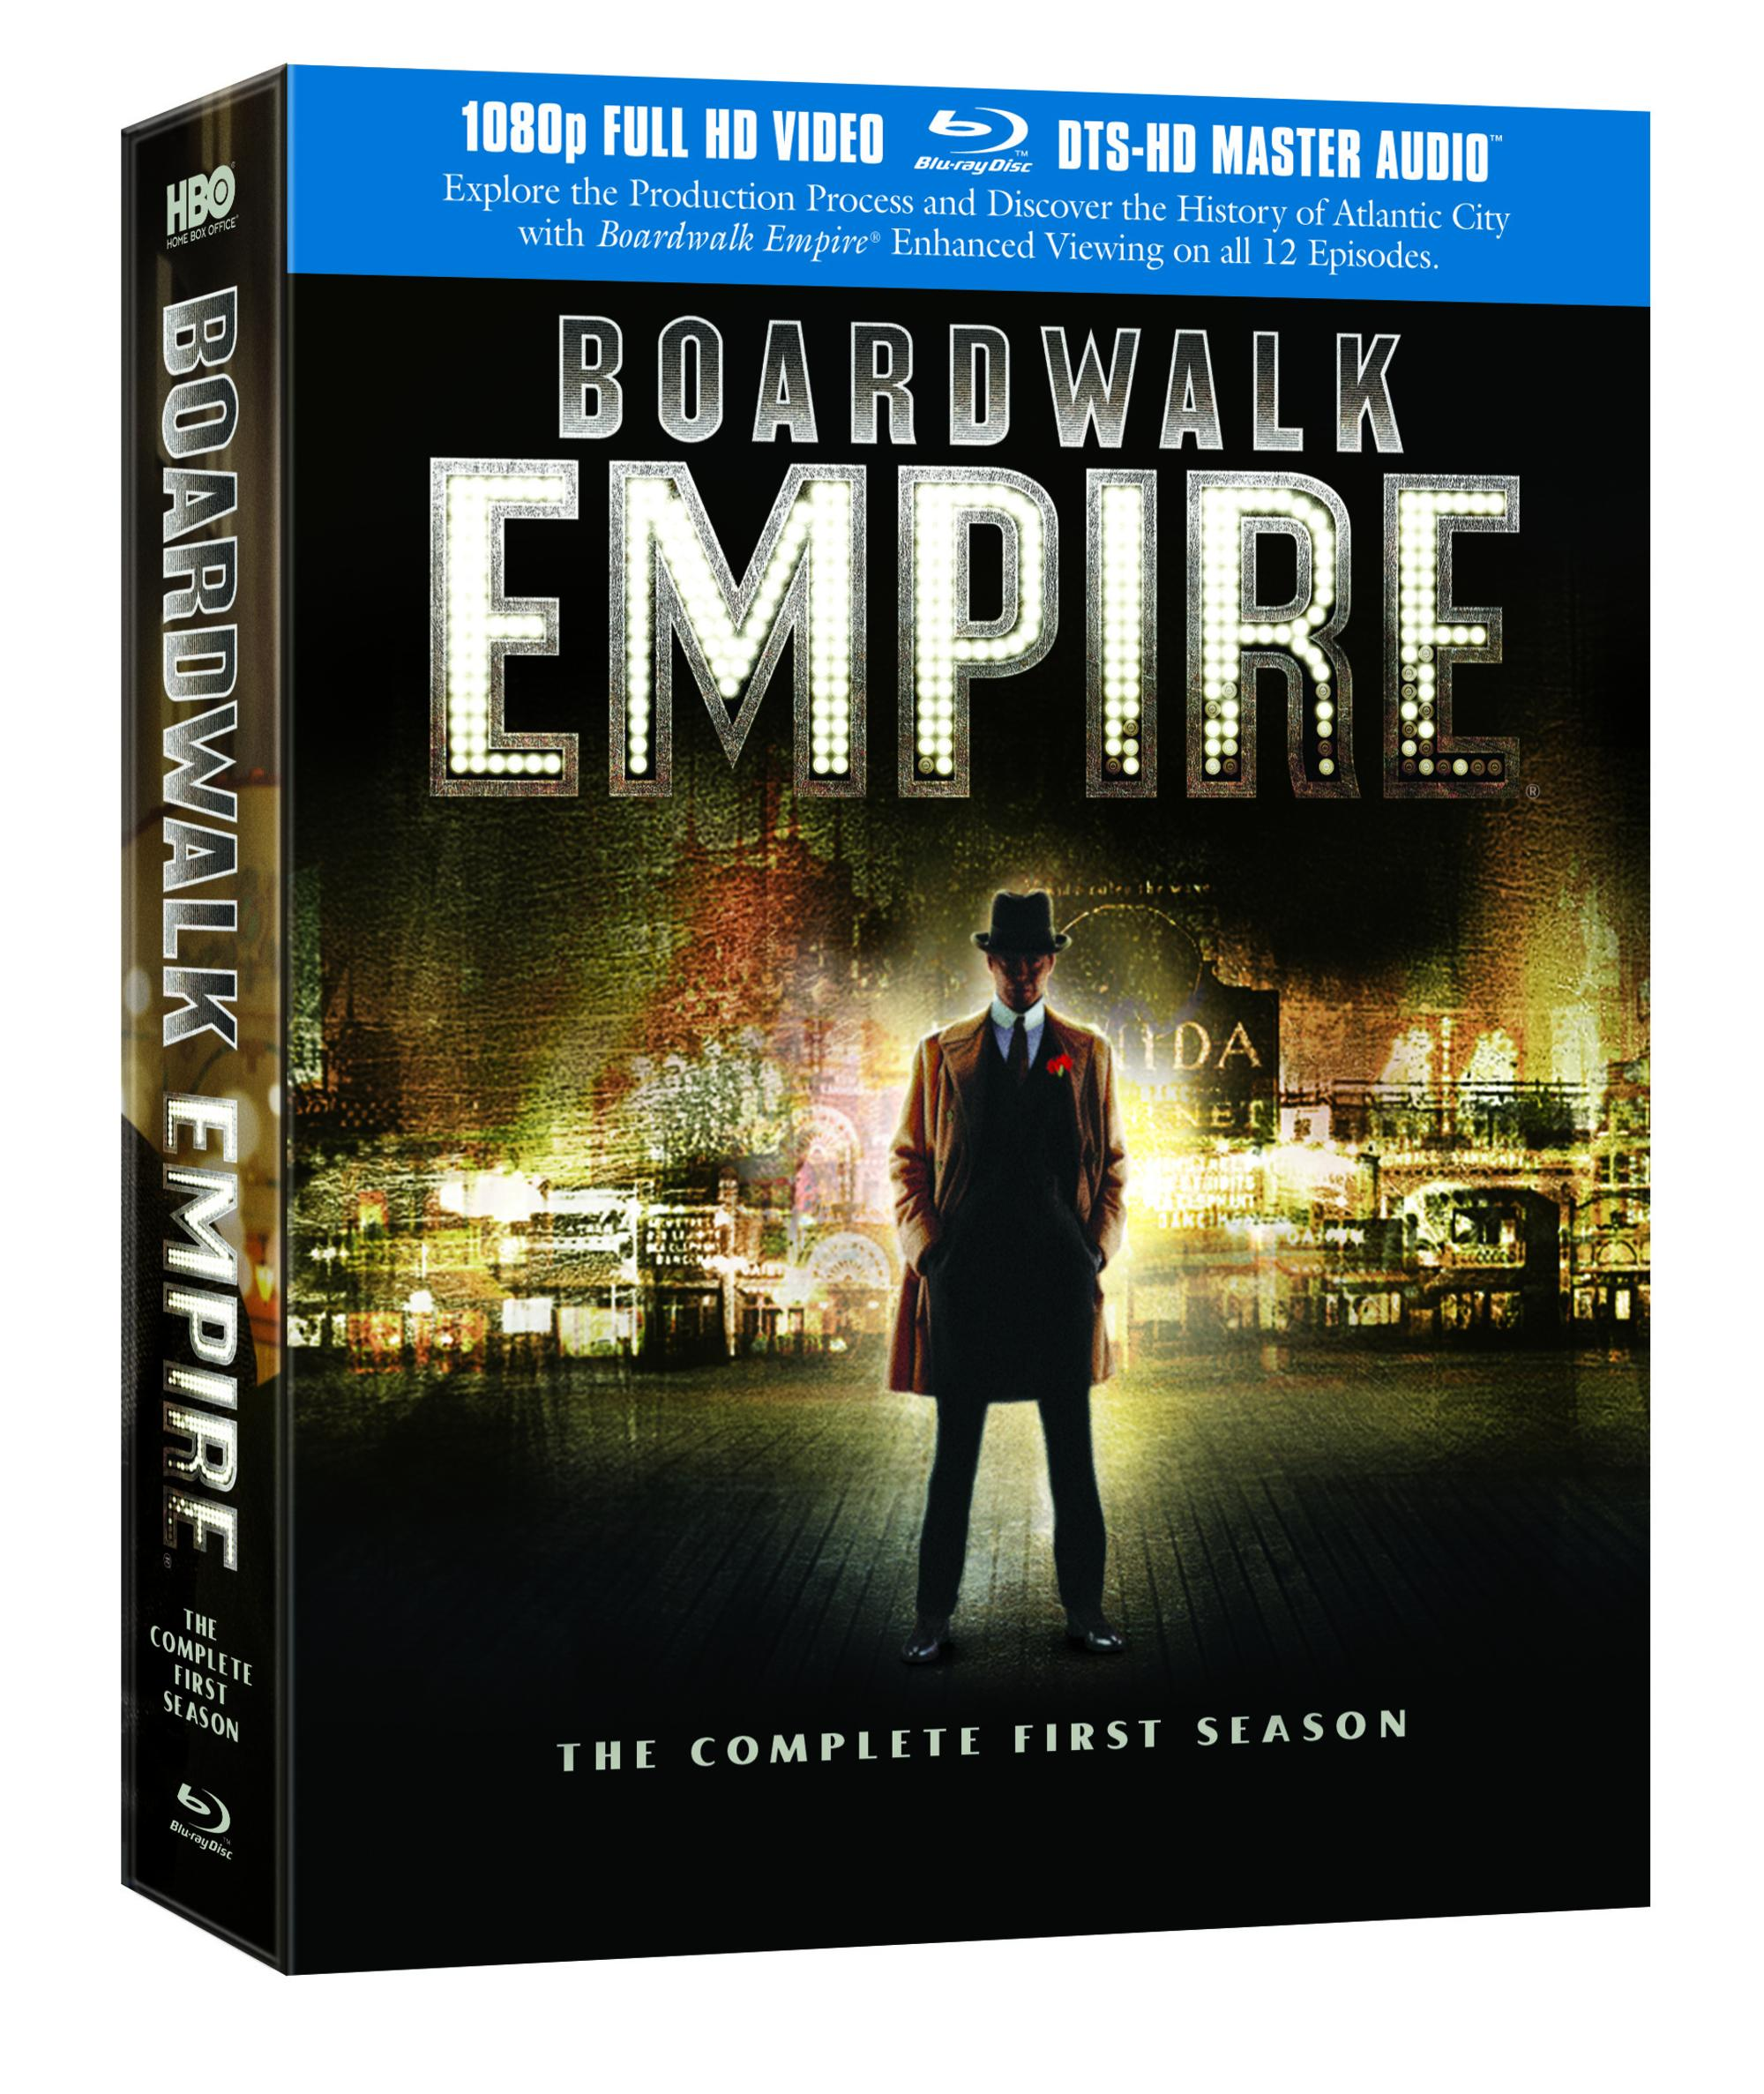 BoardwalkEmpire3D